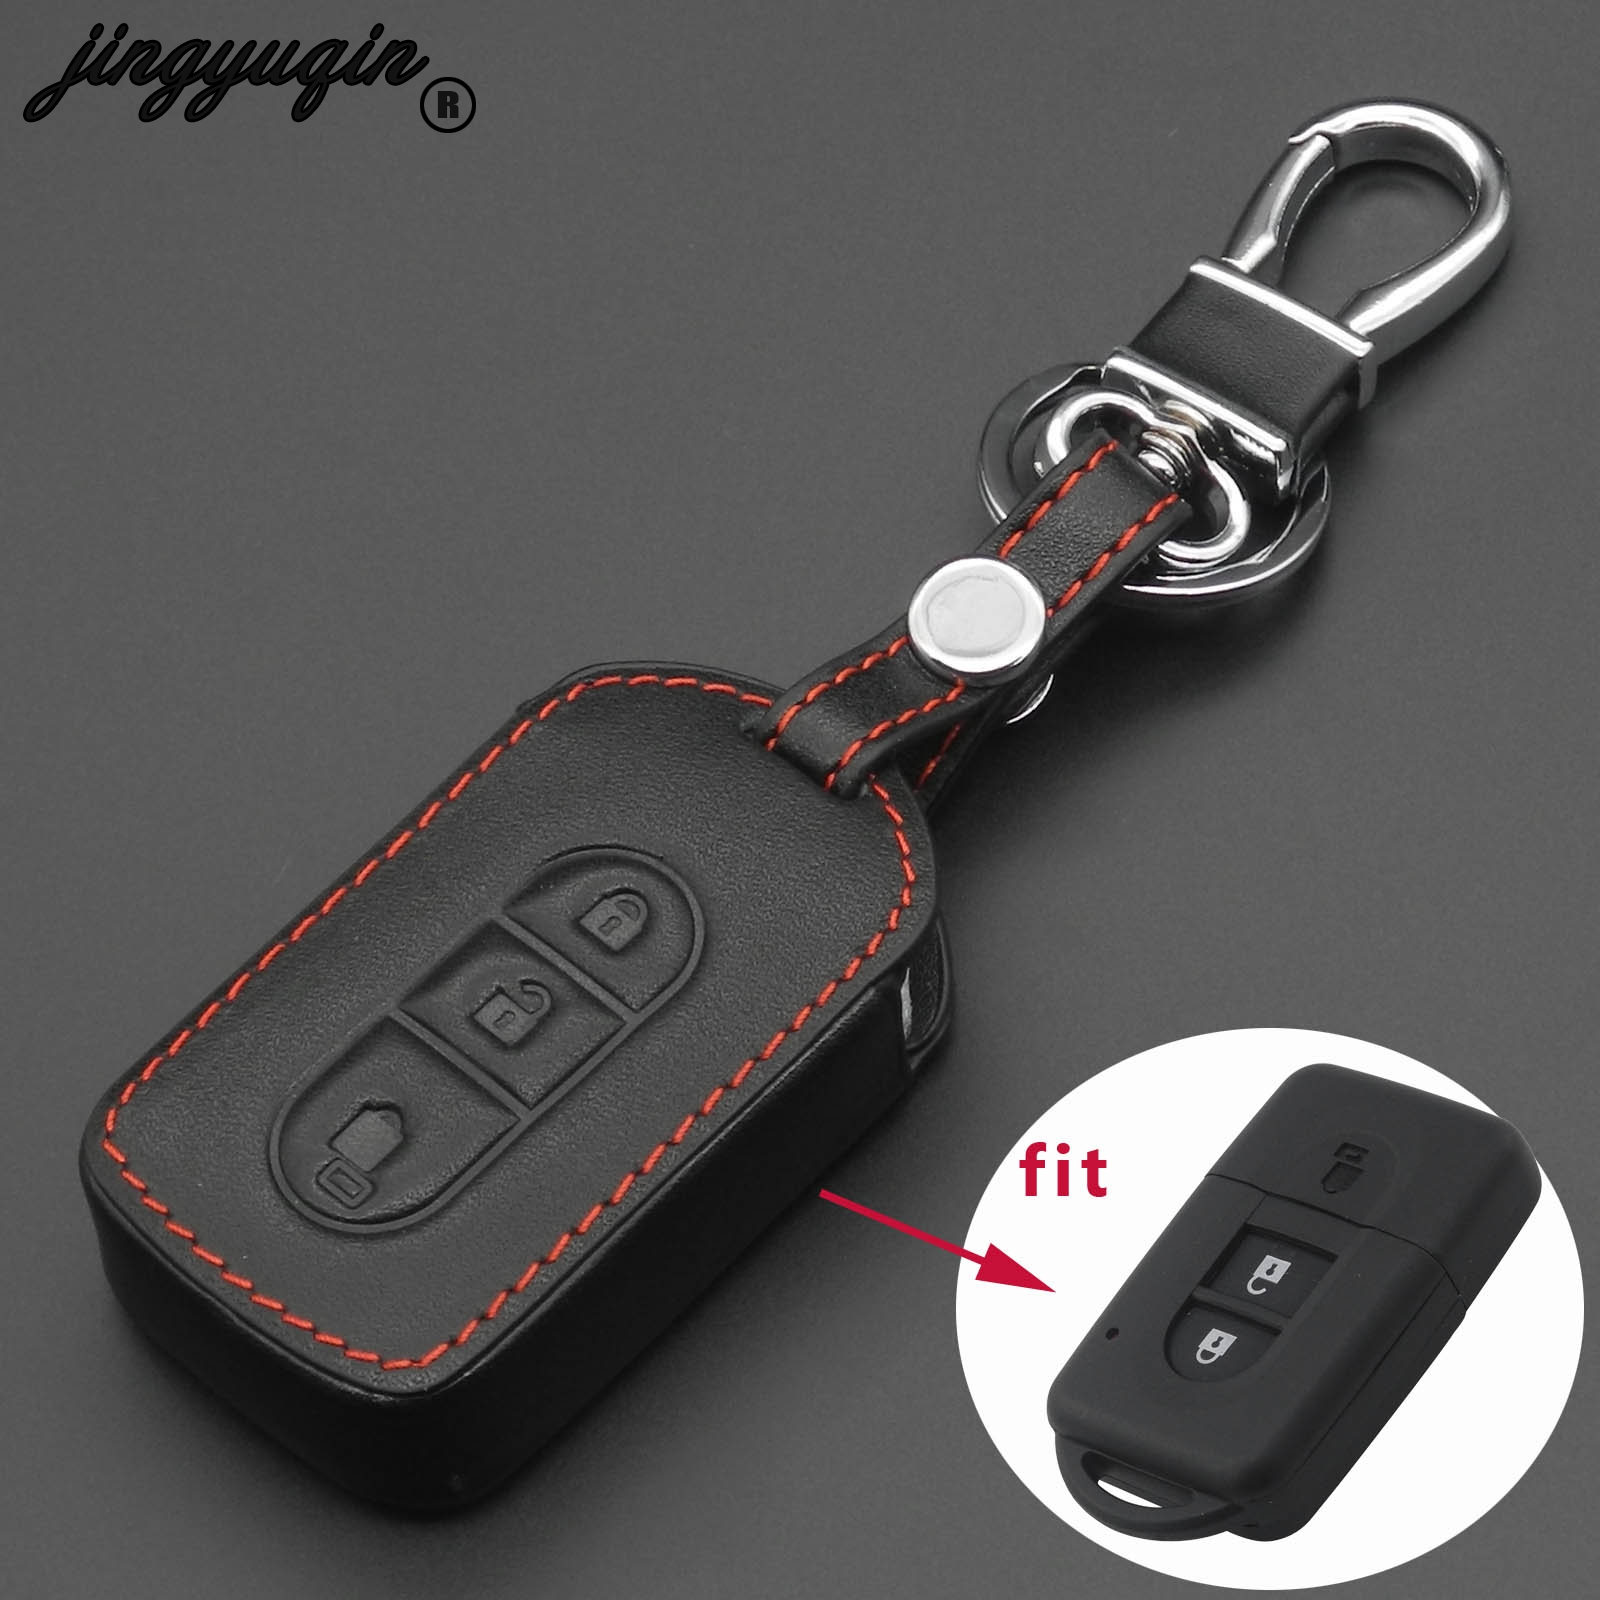 NEW 3 BUTTON UNCUT REMOTE KEY FOB CASE for NISSAN MICRA JUKE etc